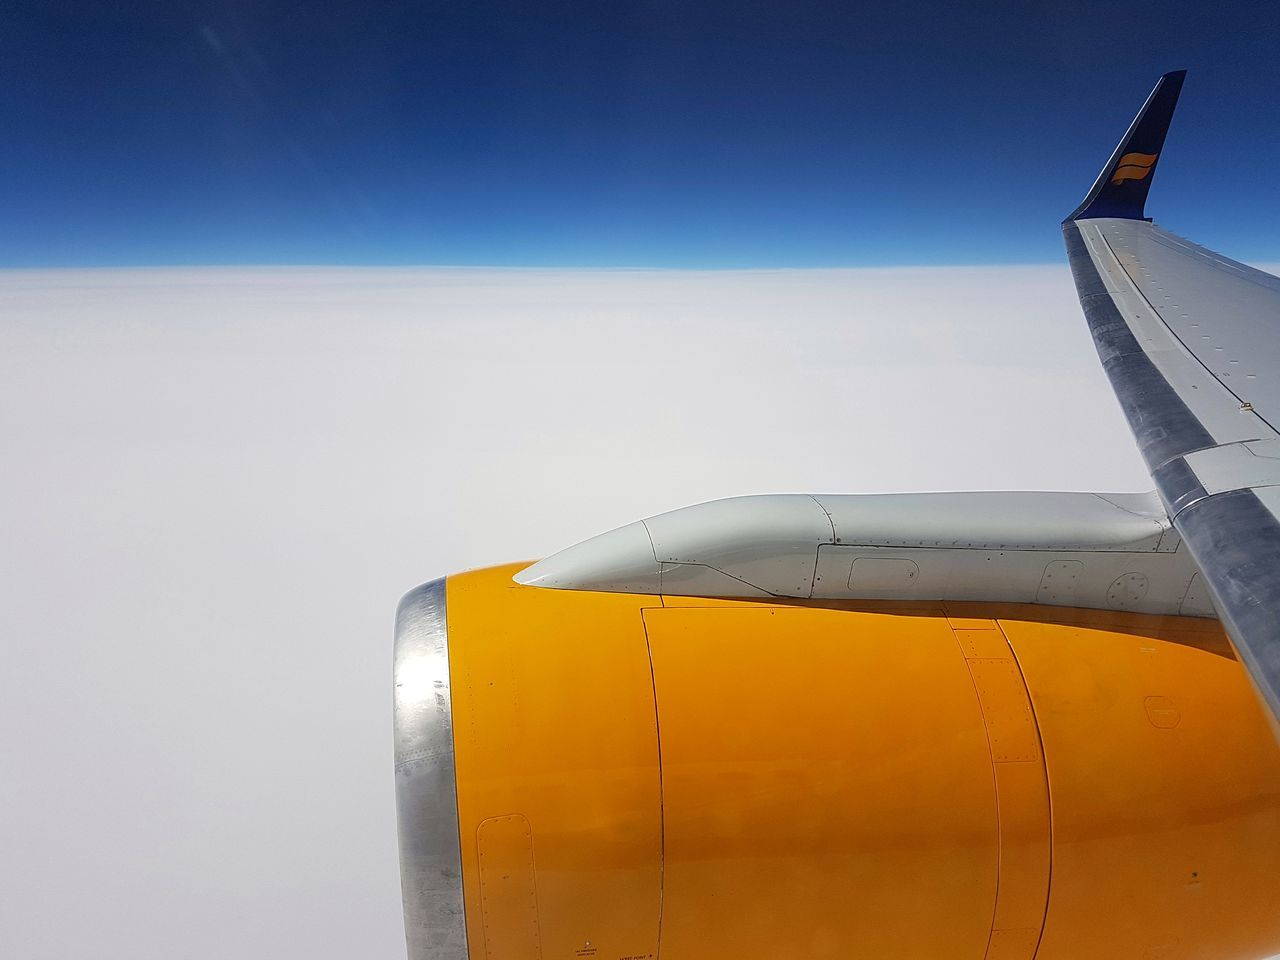 Airplane Cold Temperature Sky Travel Flight Engine Jet Transportation Above The Clouds Blue Sky Clouds Yellow Bright Day Wing Lifestyles